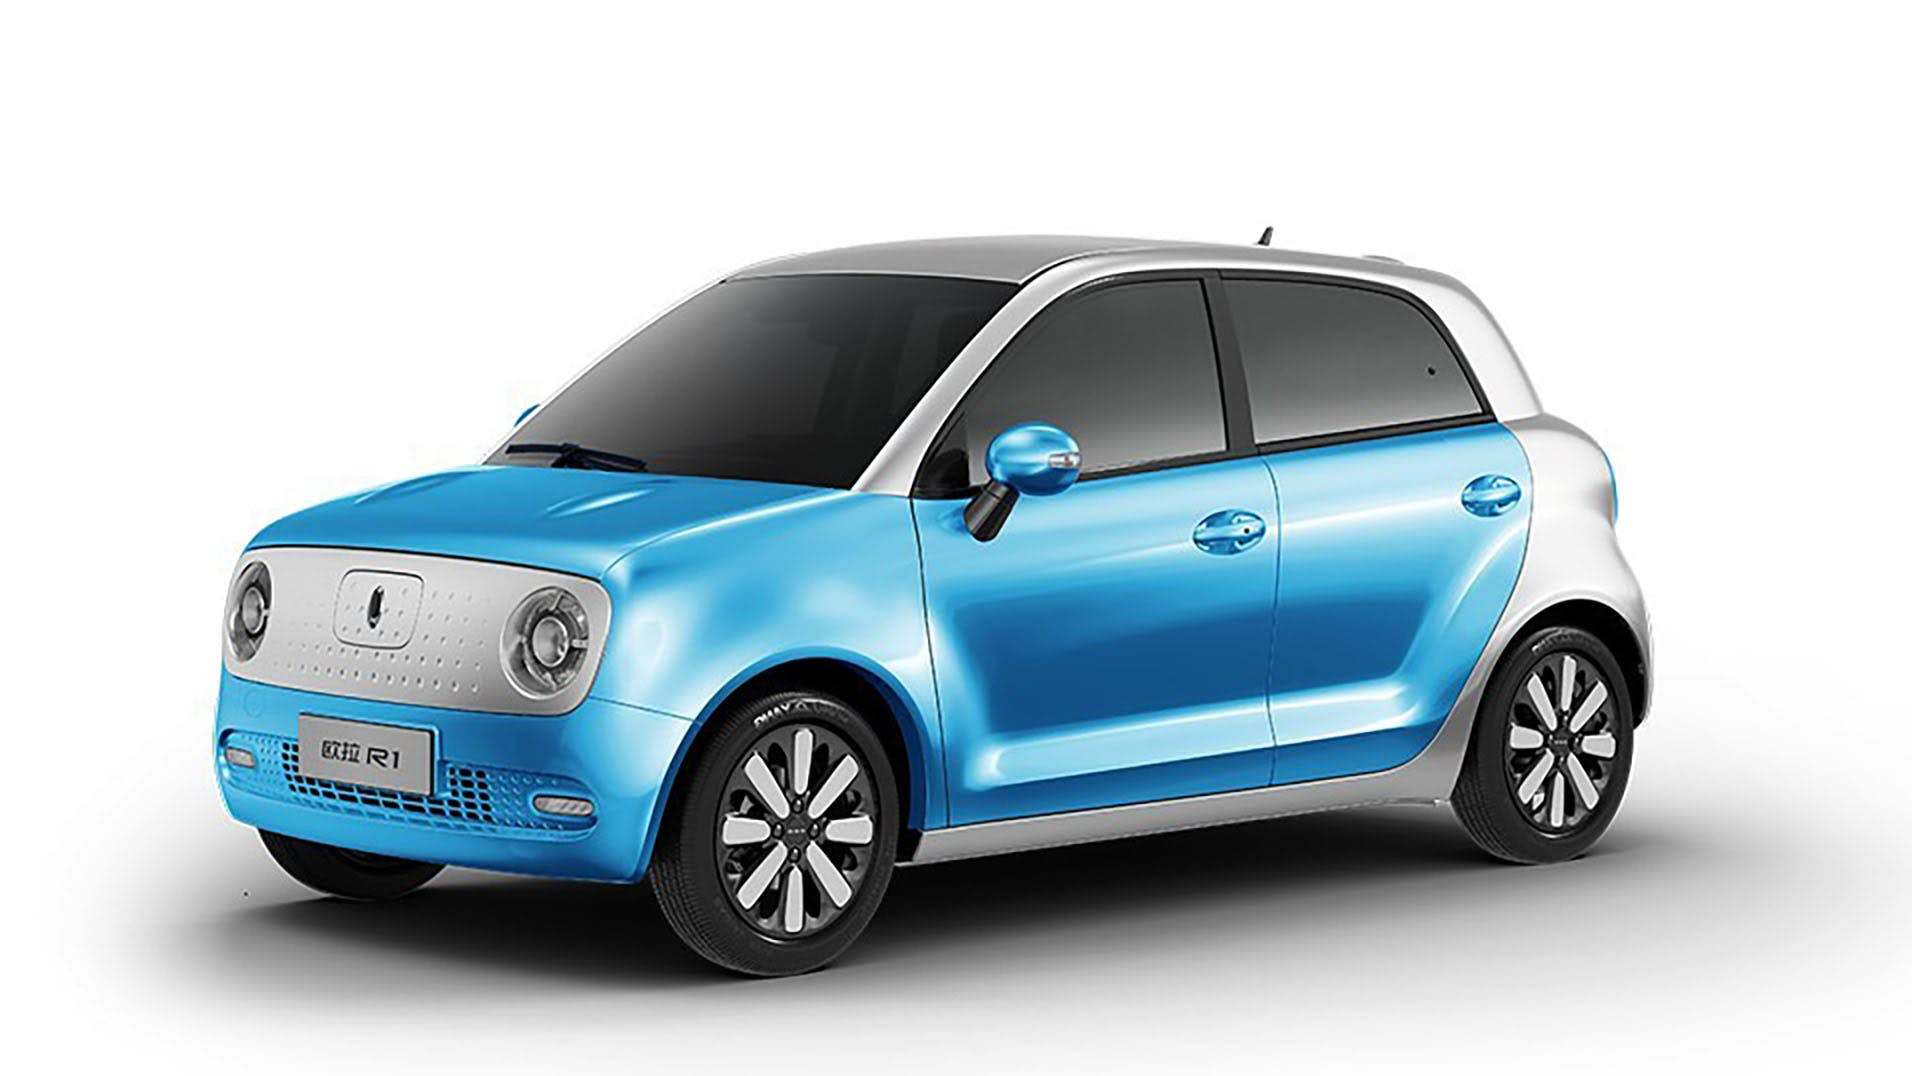 Rendering of blue and white compact car